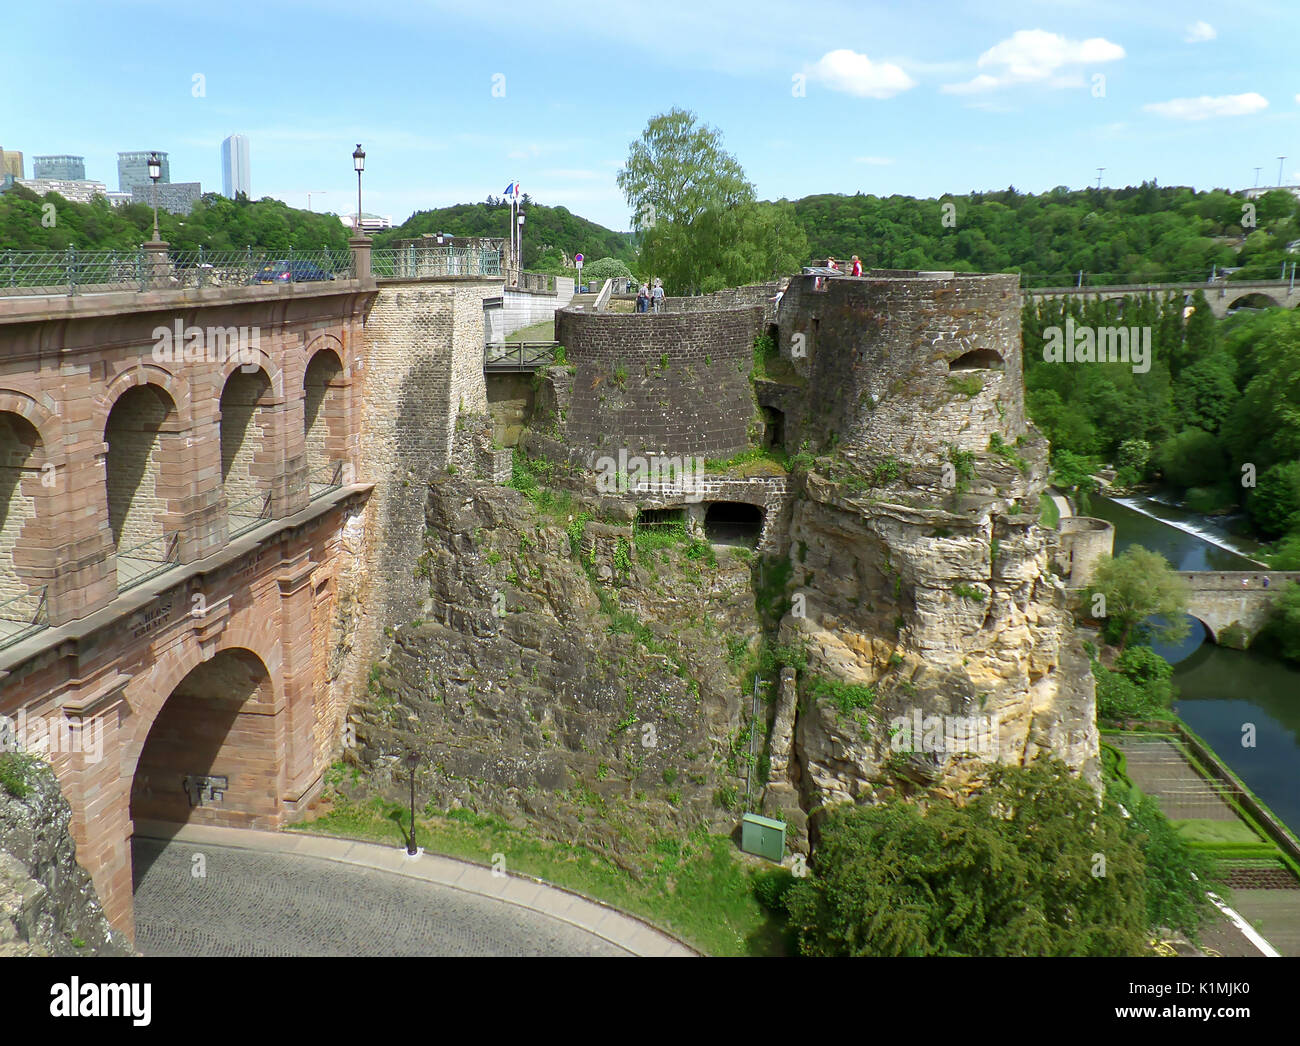 Pont du Chateau and Bock Casemates at Luxembourg City, Luxembourg - Stock Image